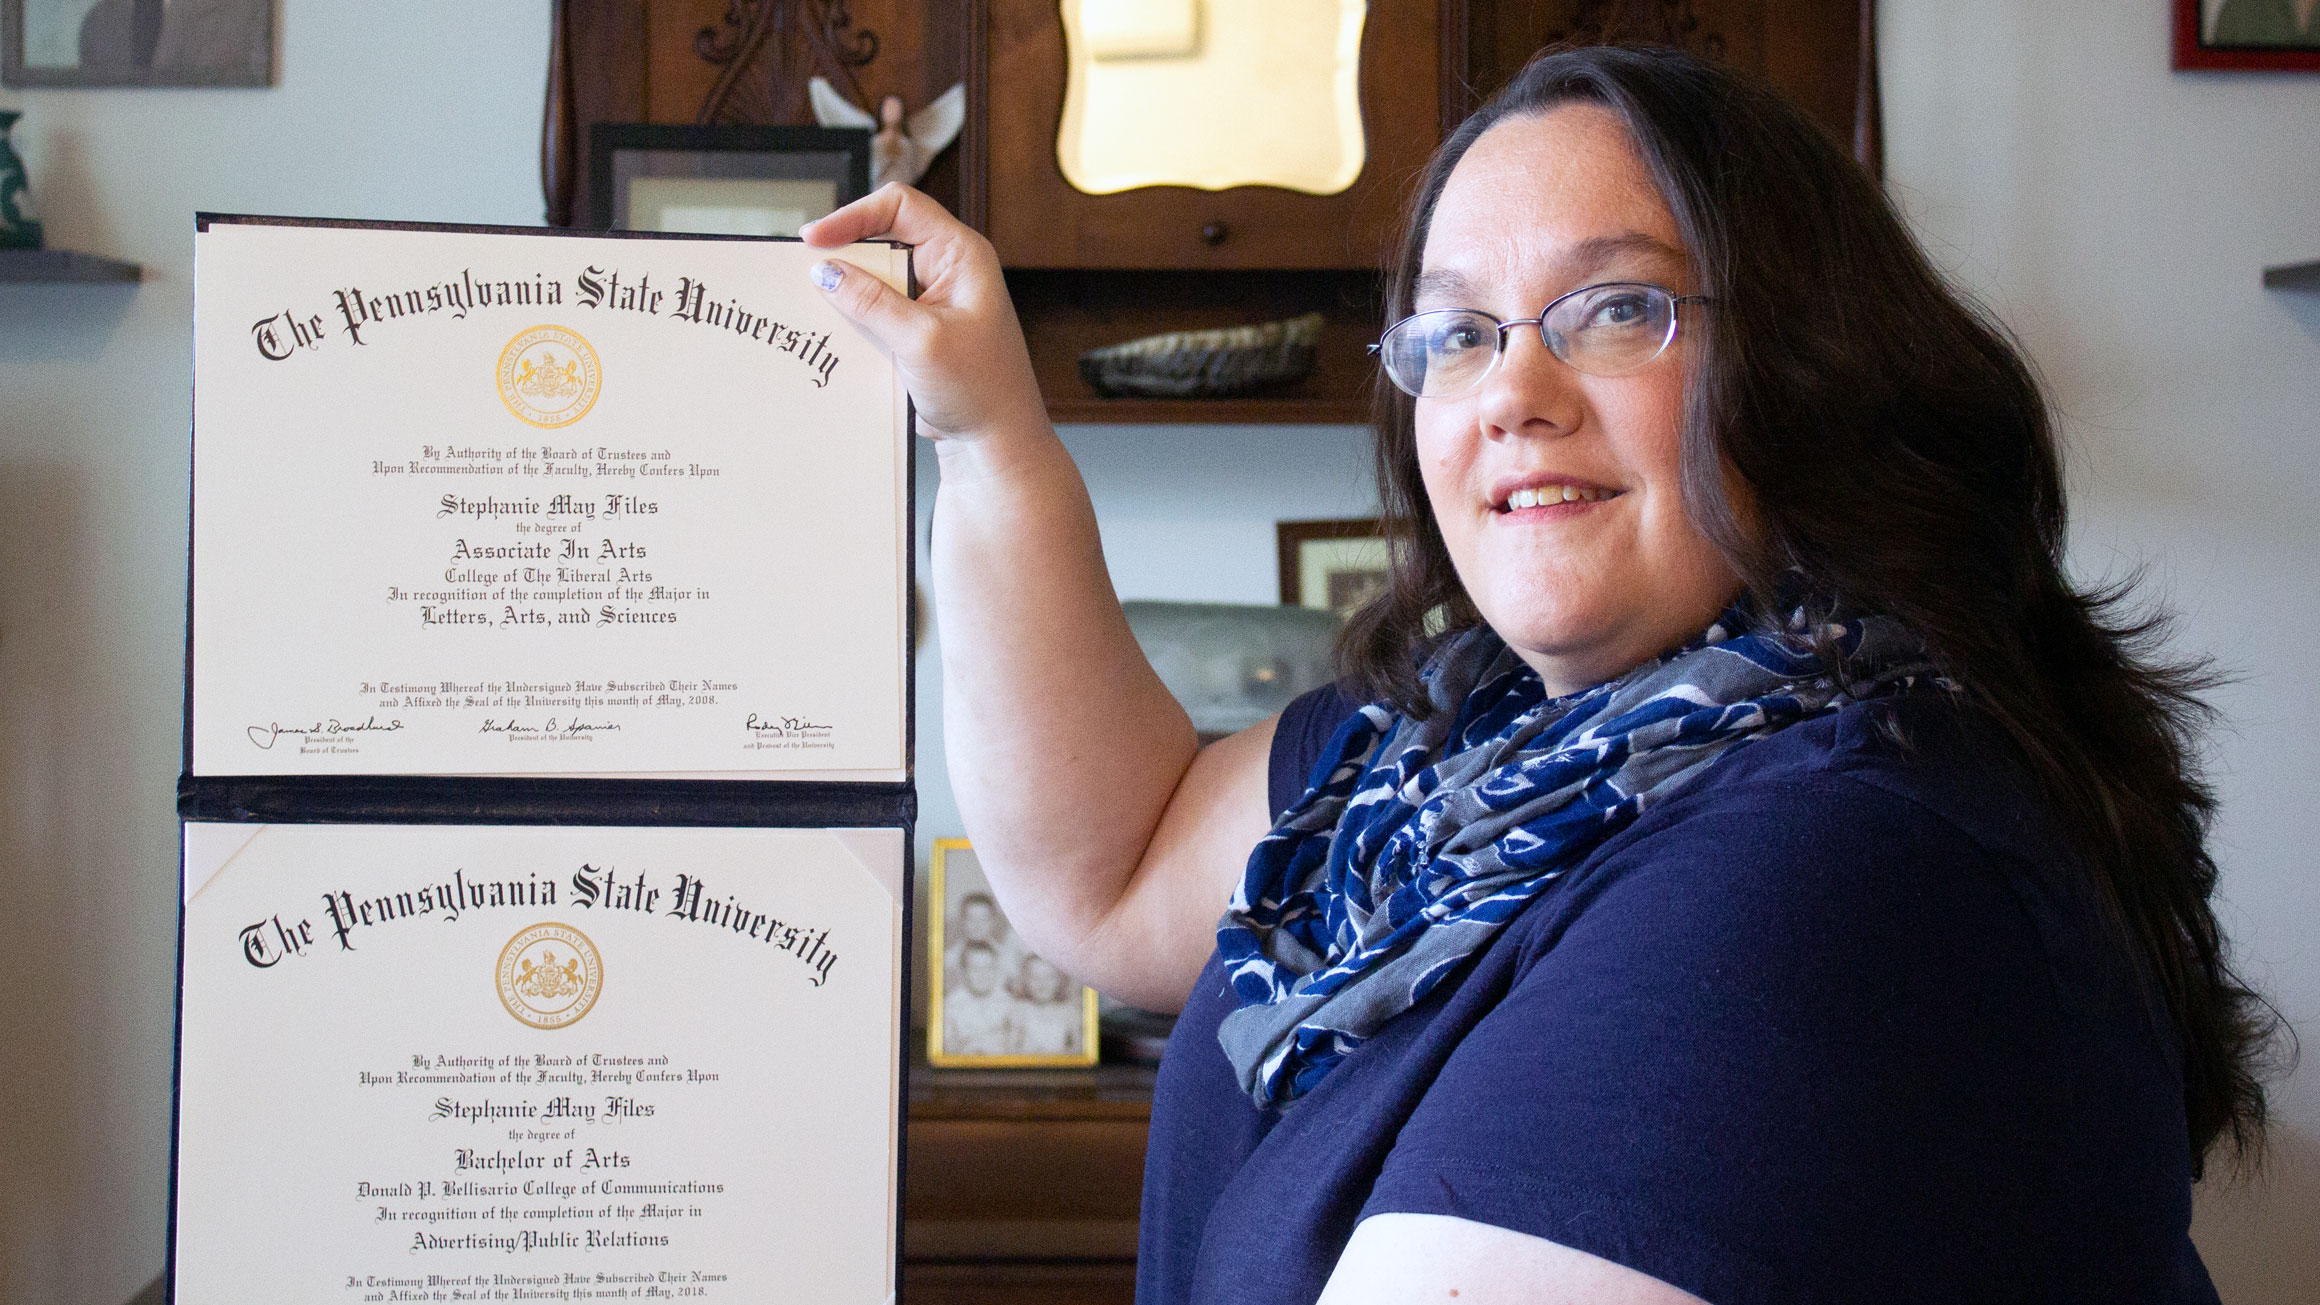 Stephanie Files displays two diplomas in her hands